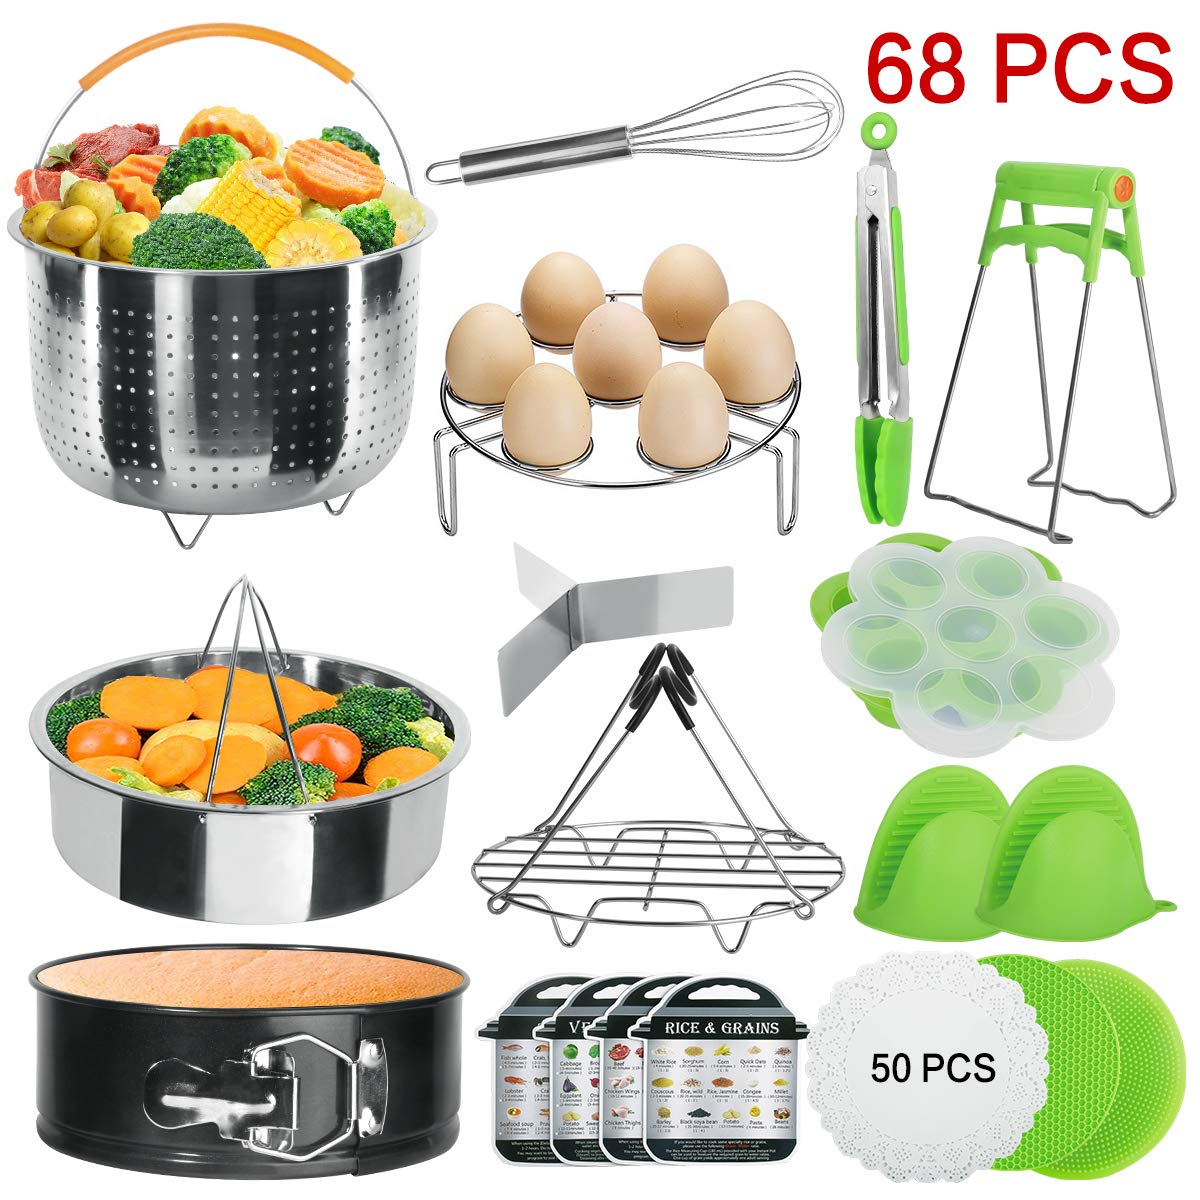 VERONES Accessories Set Compatible with Instant Pot 5,6,8 Qt - Steamer Baskets, Springform Pan, Egg Steamer Rack, Egg Bites Mold, Dish Plate Clip, Kitchen Tong, Oven Mitts, Magnetic Cheat Sheets